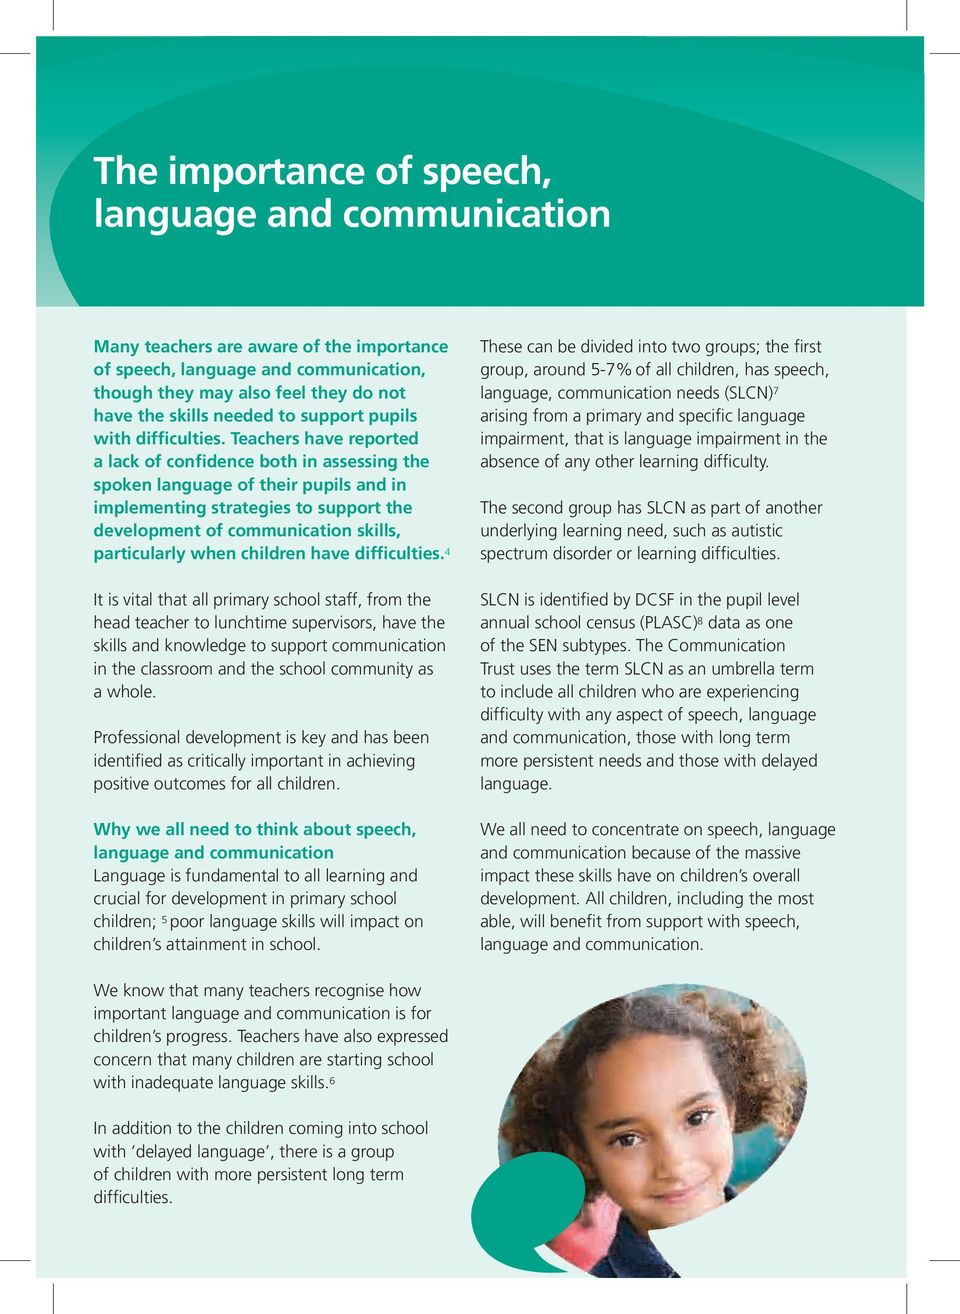 Teachers have reported a ack of confidence both in assessing the spoken anguage of their pupis and in impementing strategies to support the deveopment of communication skis, particuary when chidren